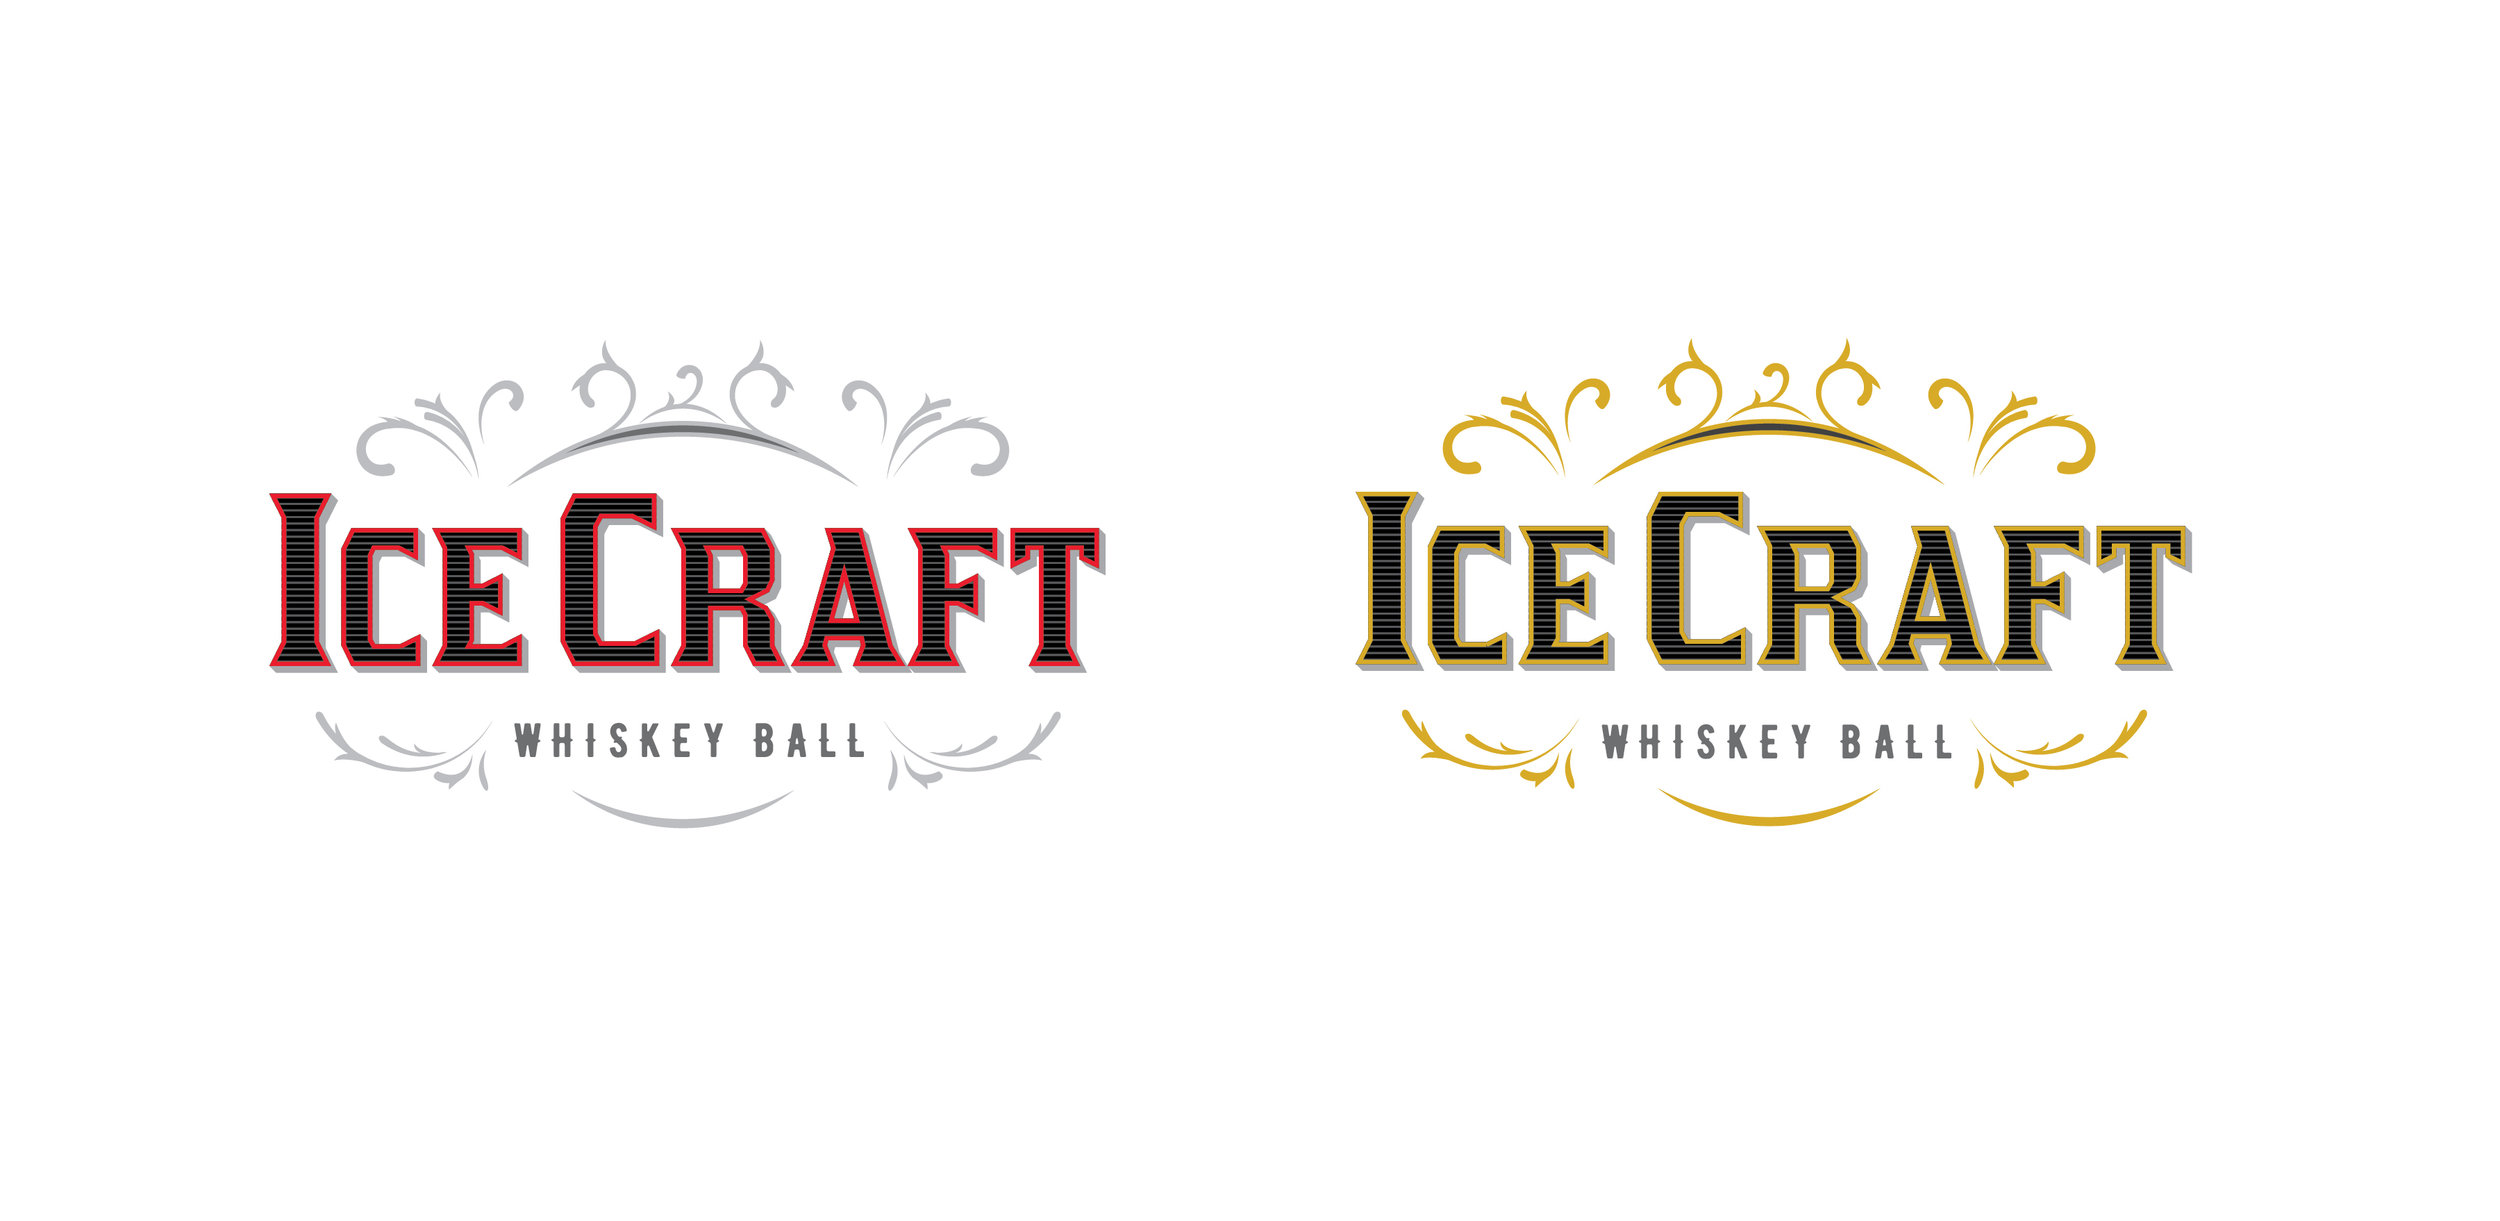 whiskey-ball-logo-design-by-jordan-fretz-desgin-19.jpg